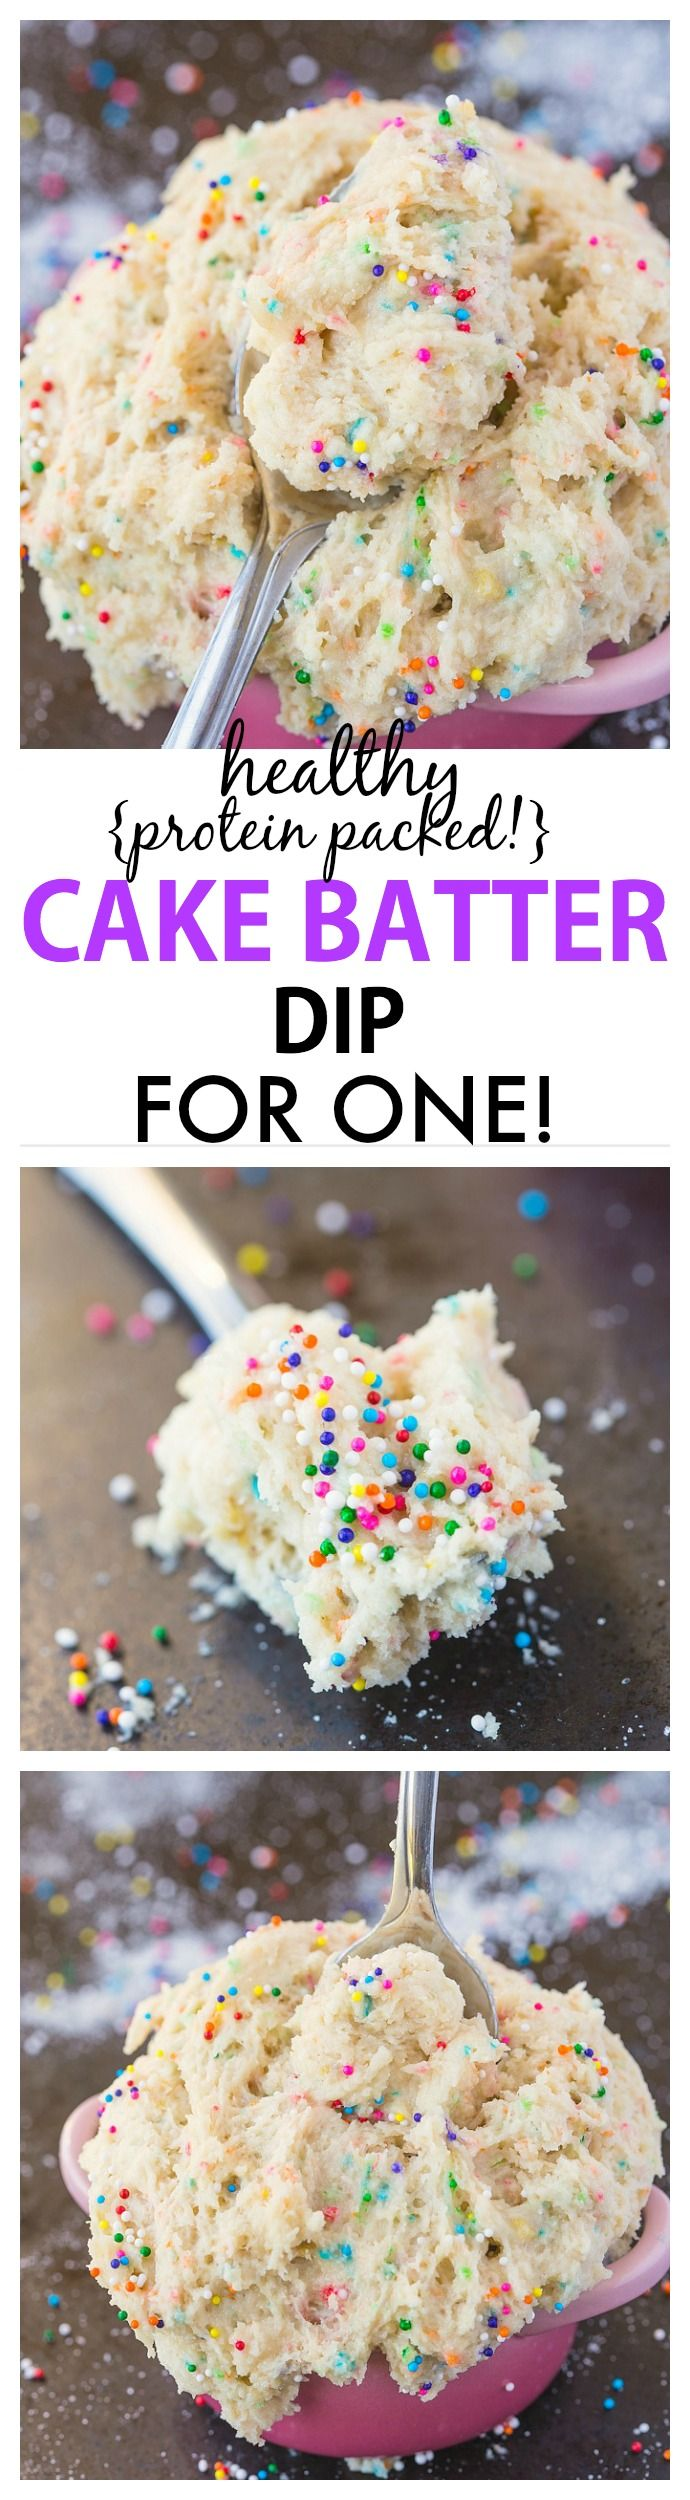 Healthy Cake Batter dip for ONE recipe- Delicious, creamy and packed protein, it only takes 5 minutes to whip up! Sinfully nutritious and single serve! The perfect snack or healthy dessert! {vegan, gluten free, sugar free + paleo options} - thebigmansworld.com #breakfast #healthy #protein